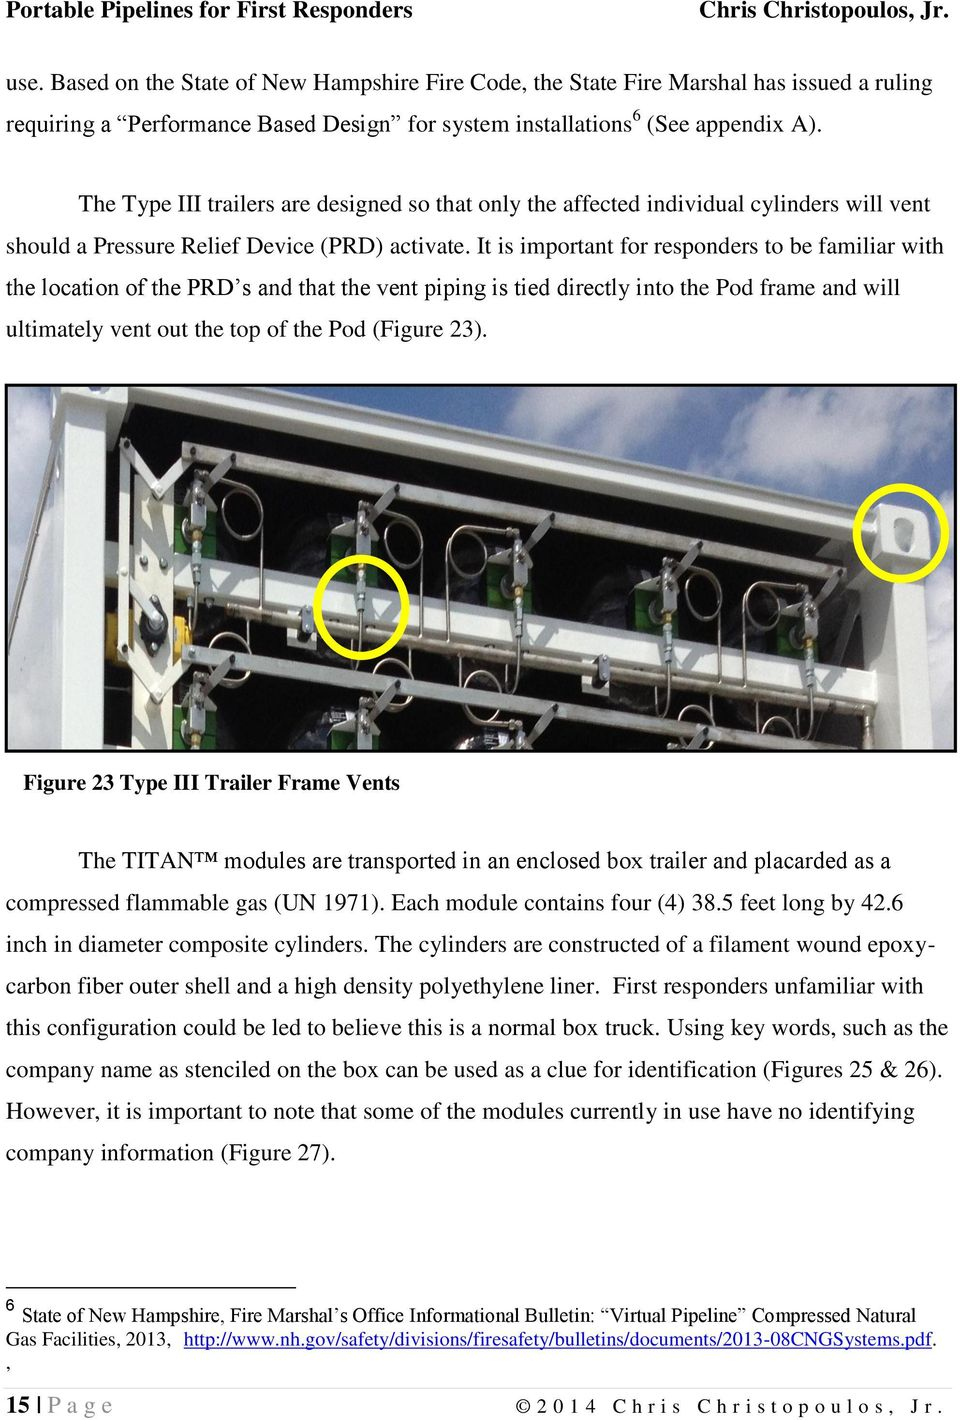 It is important for responders to be familiar with the location of the PRD s and that the vent piping is tied directly into the Pod frame and will ultimately vent out the top of the Pod (Figure 23).